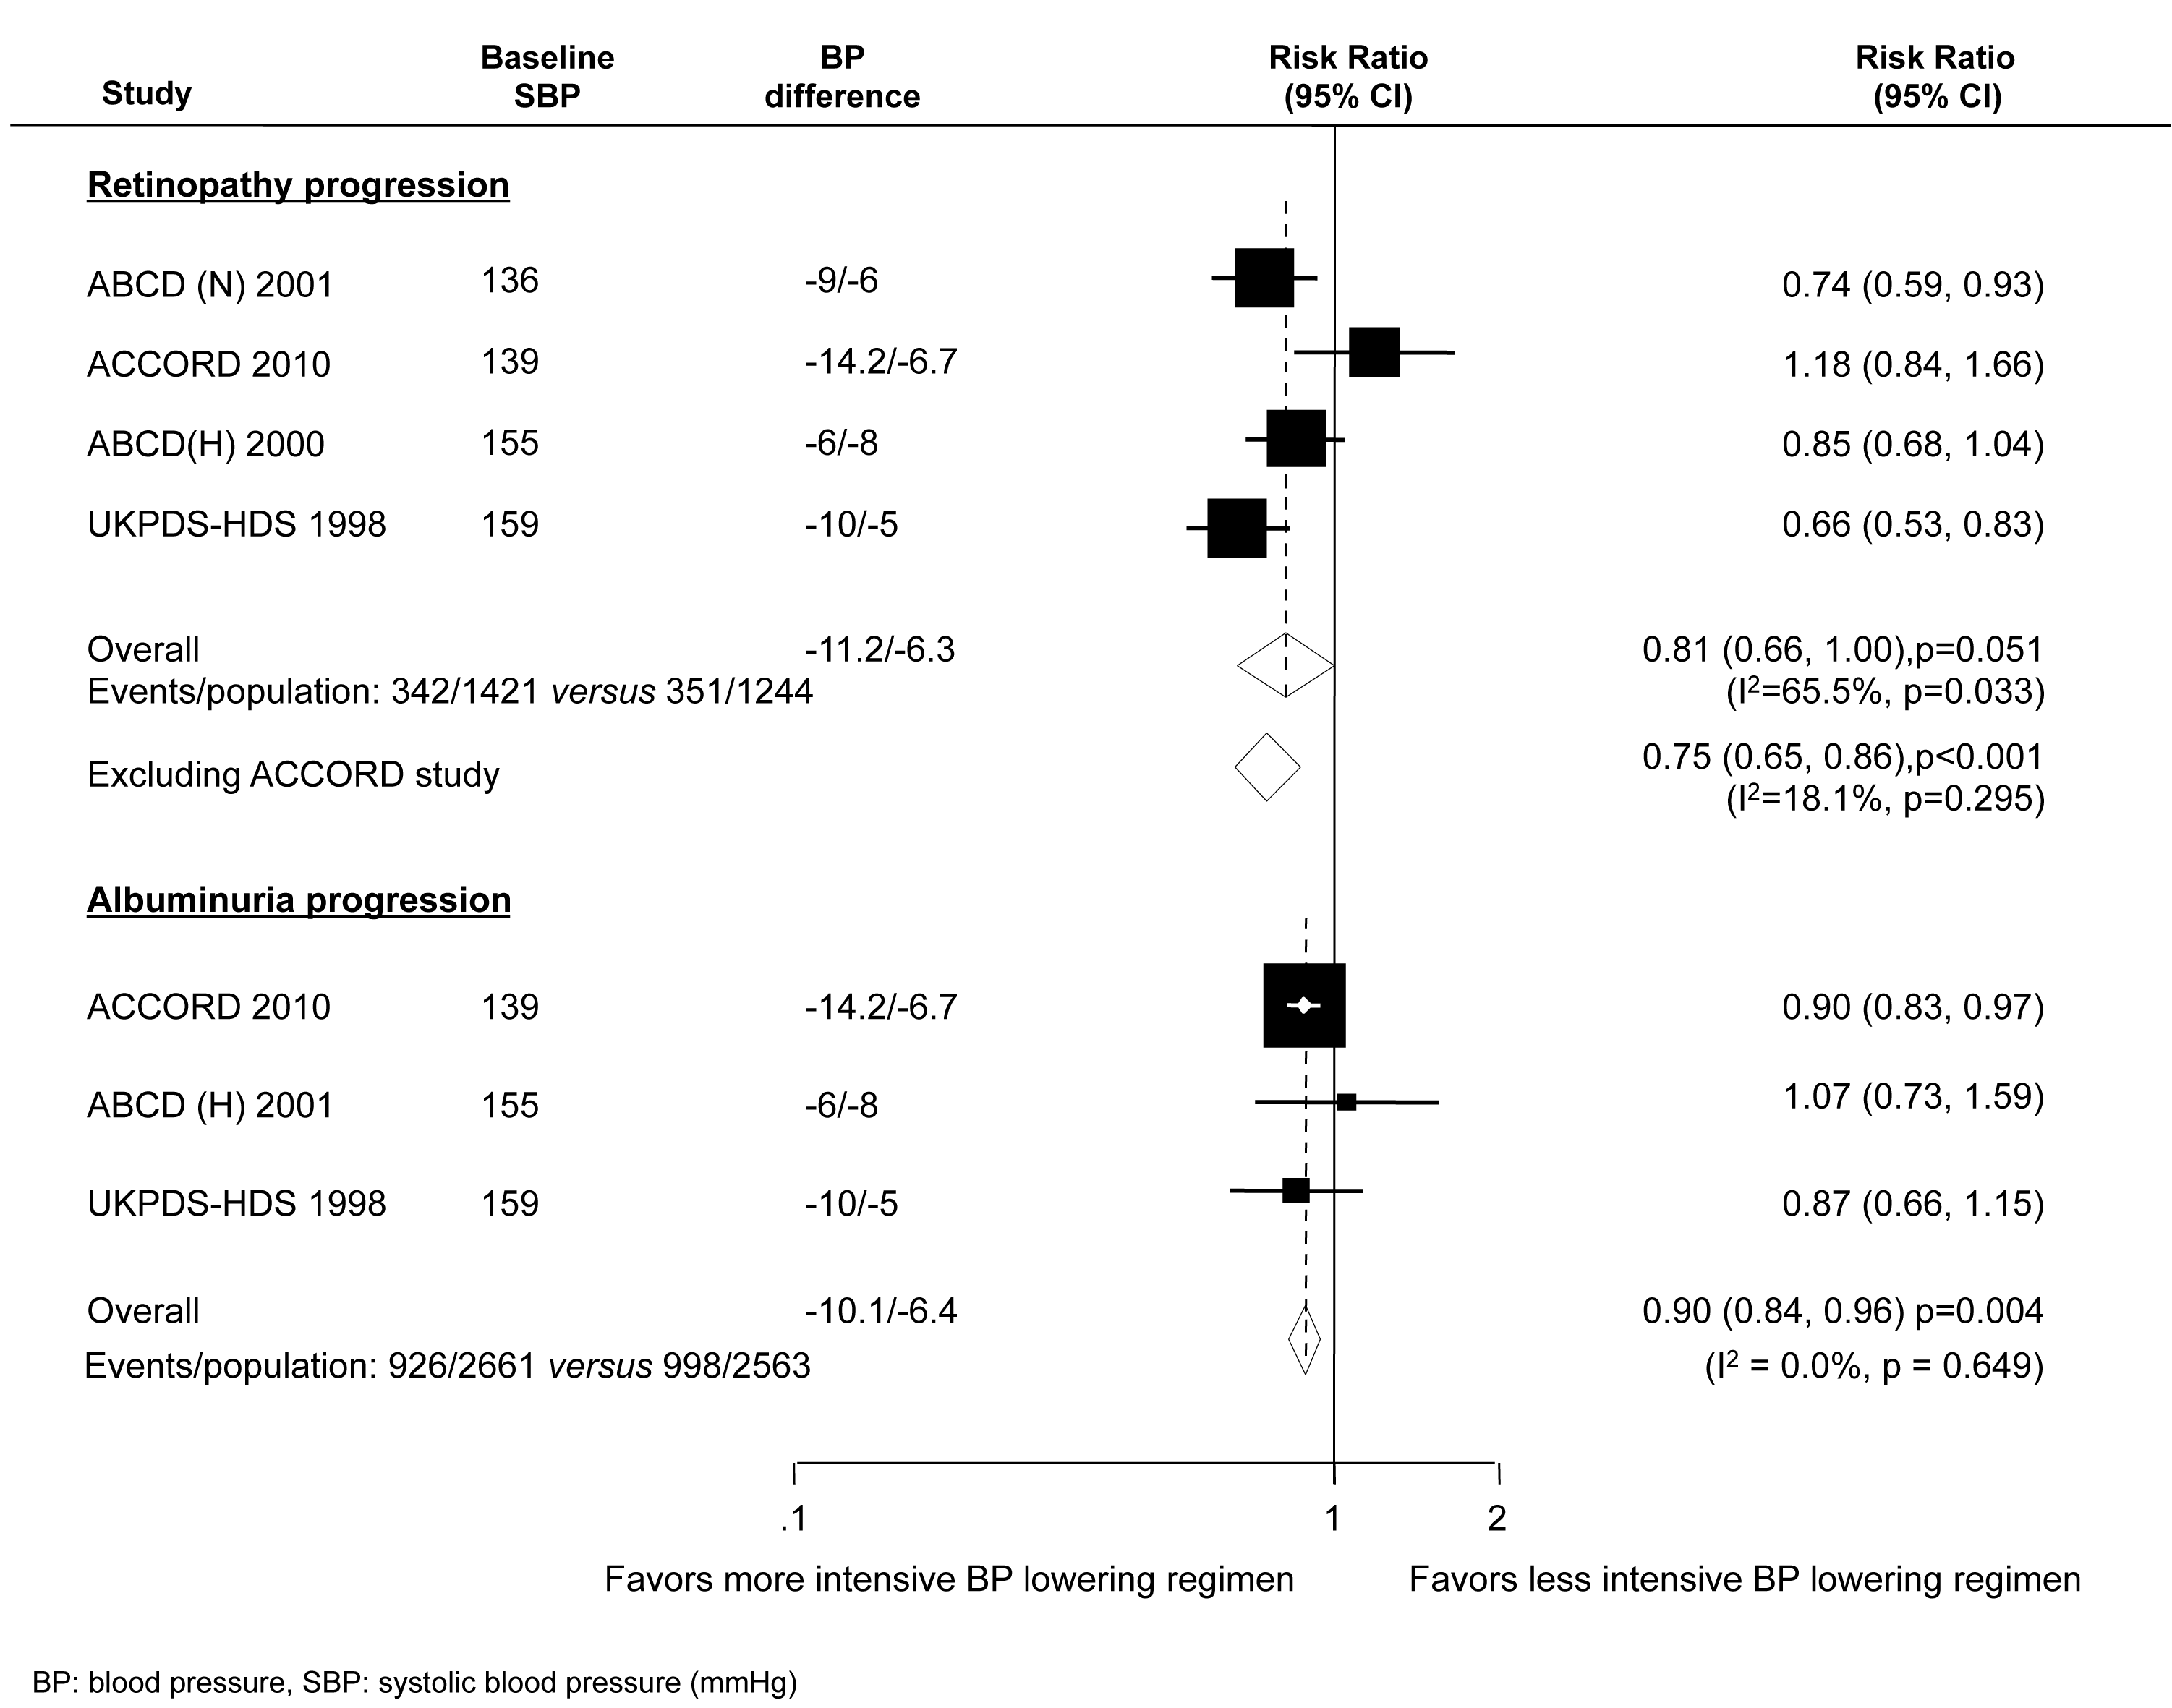 Effect of intensive BP lowering on the risk of microvascular outcomes in diabetes.